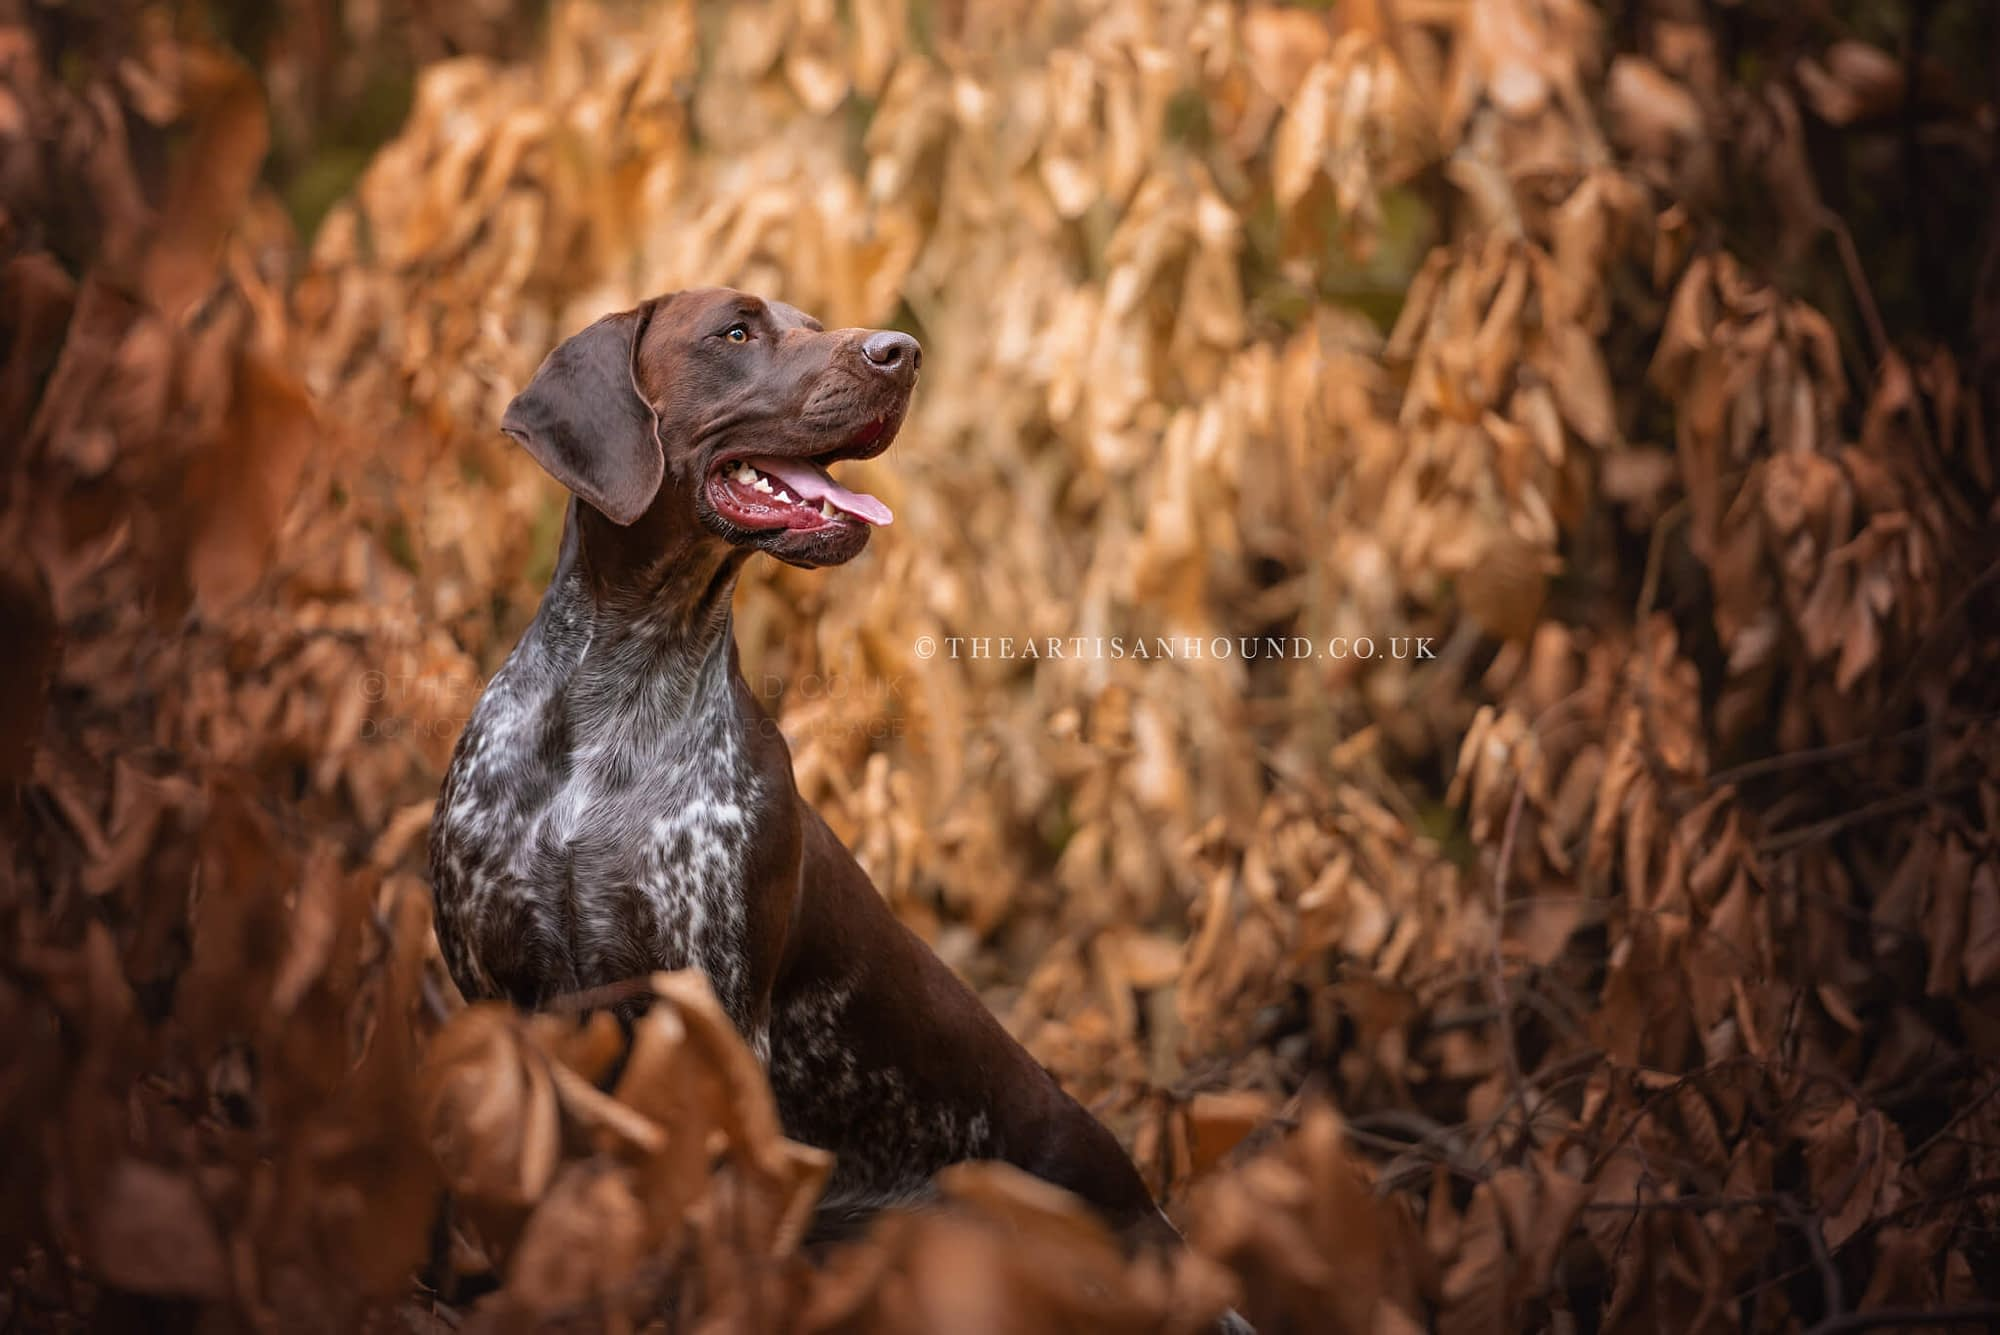 brown GSP dog in autumn leaves